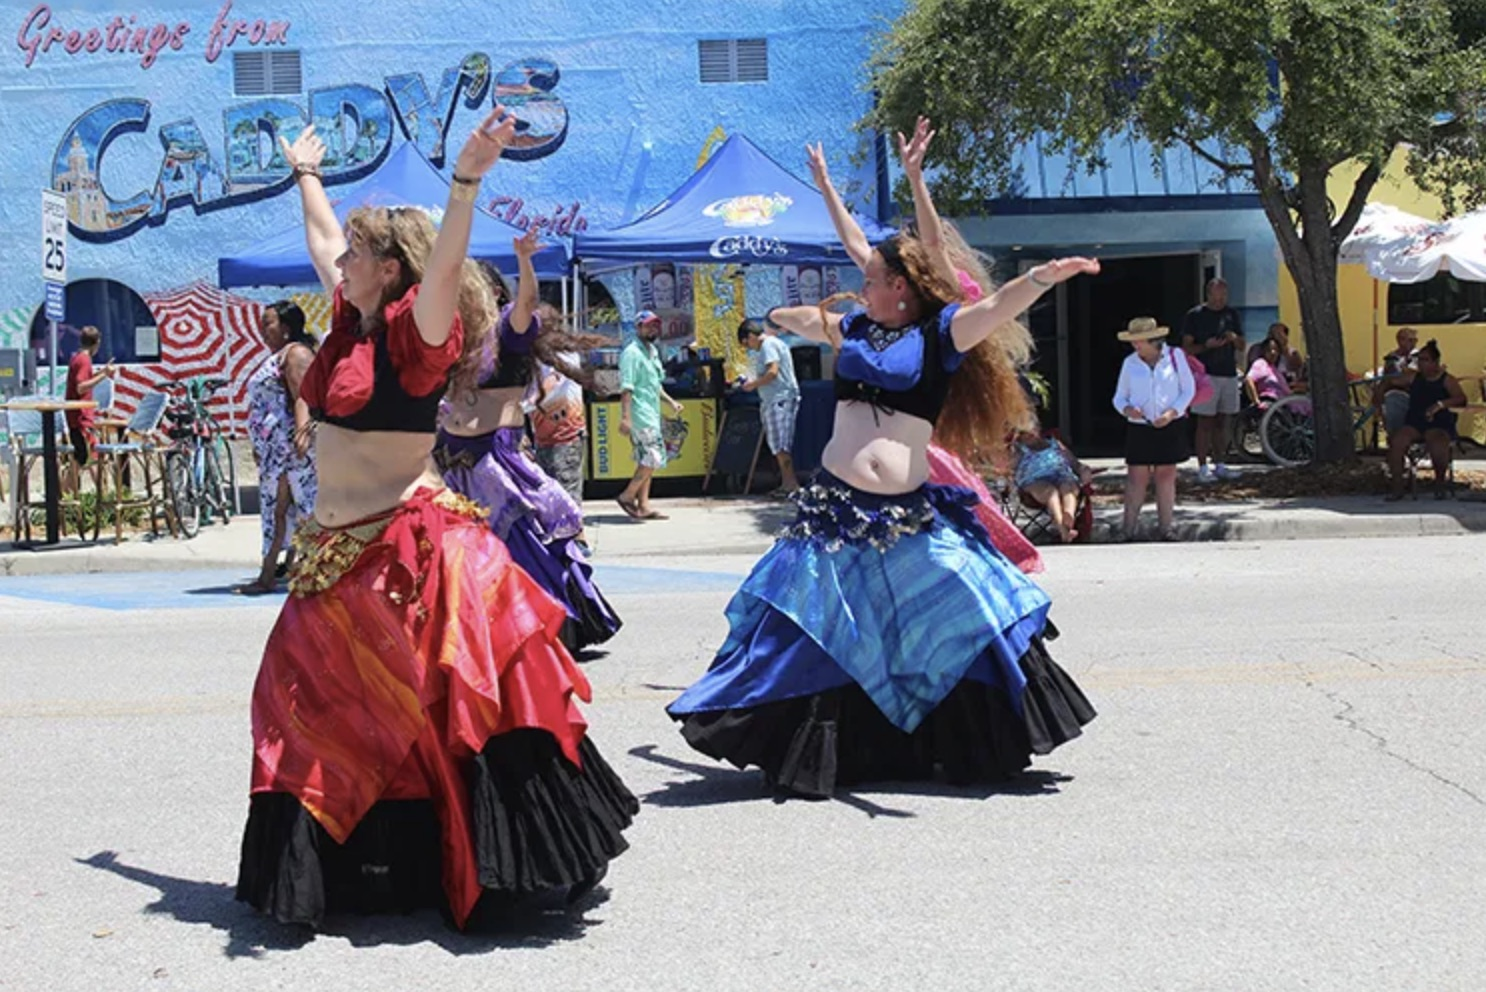 Belly dancers performing in a street festival.